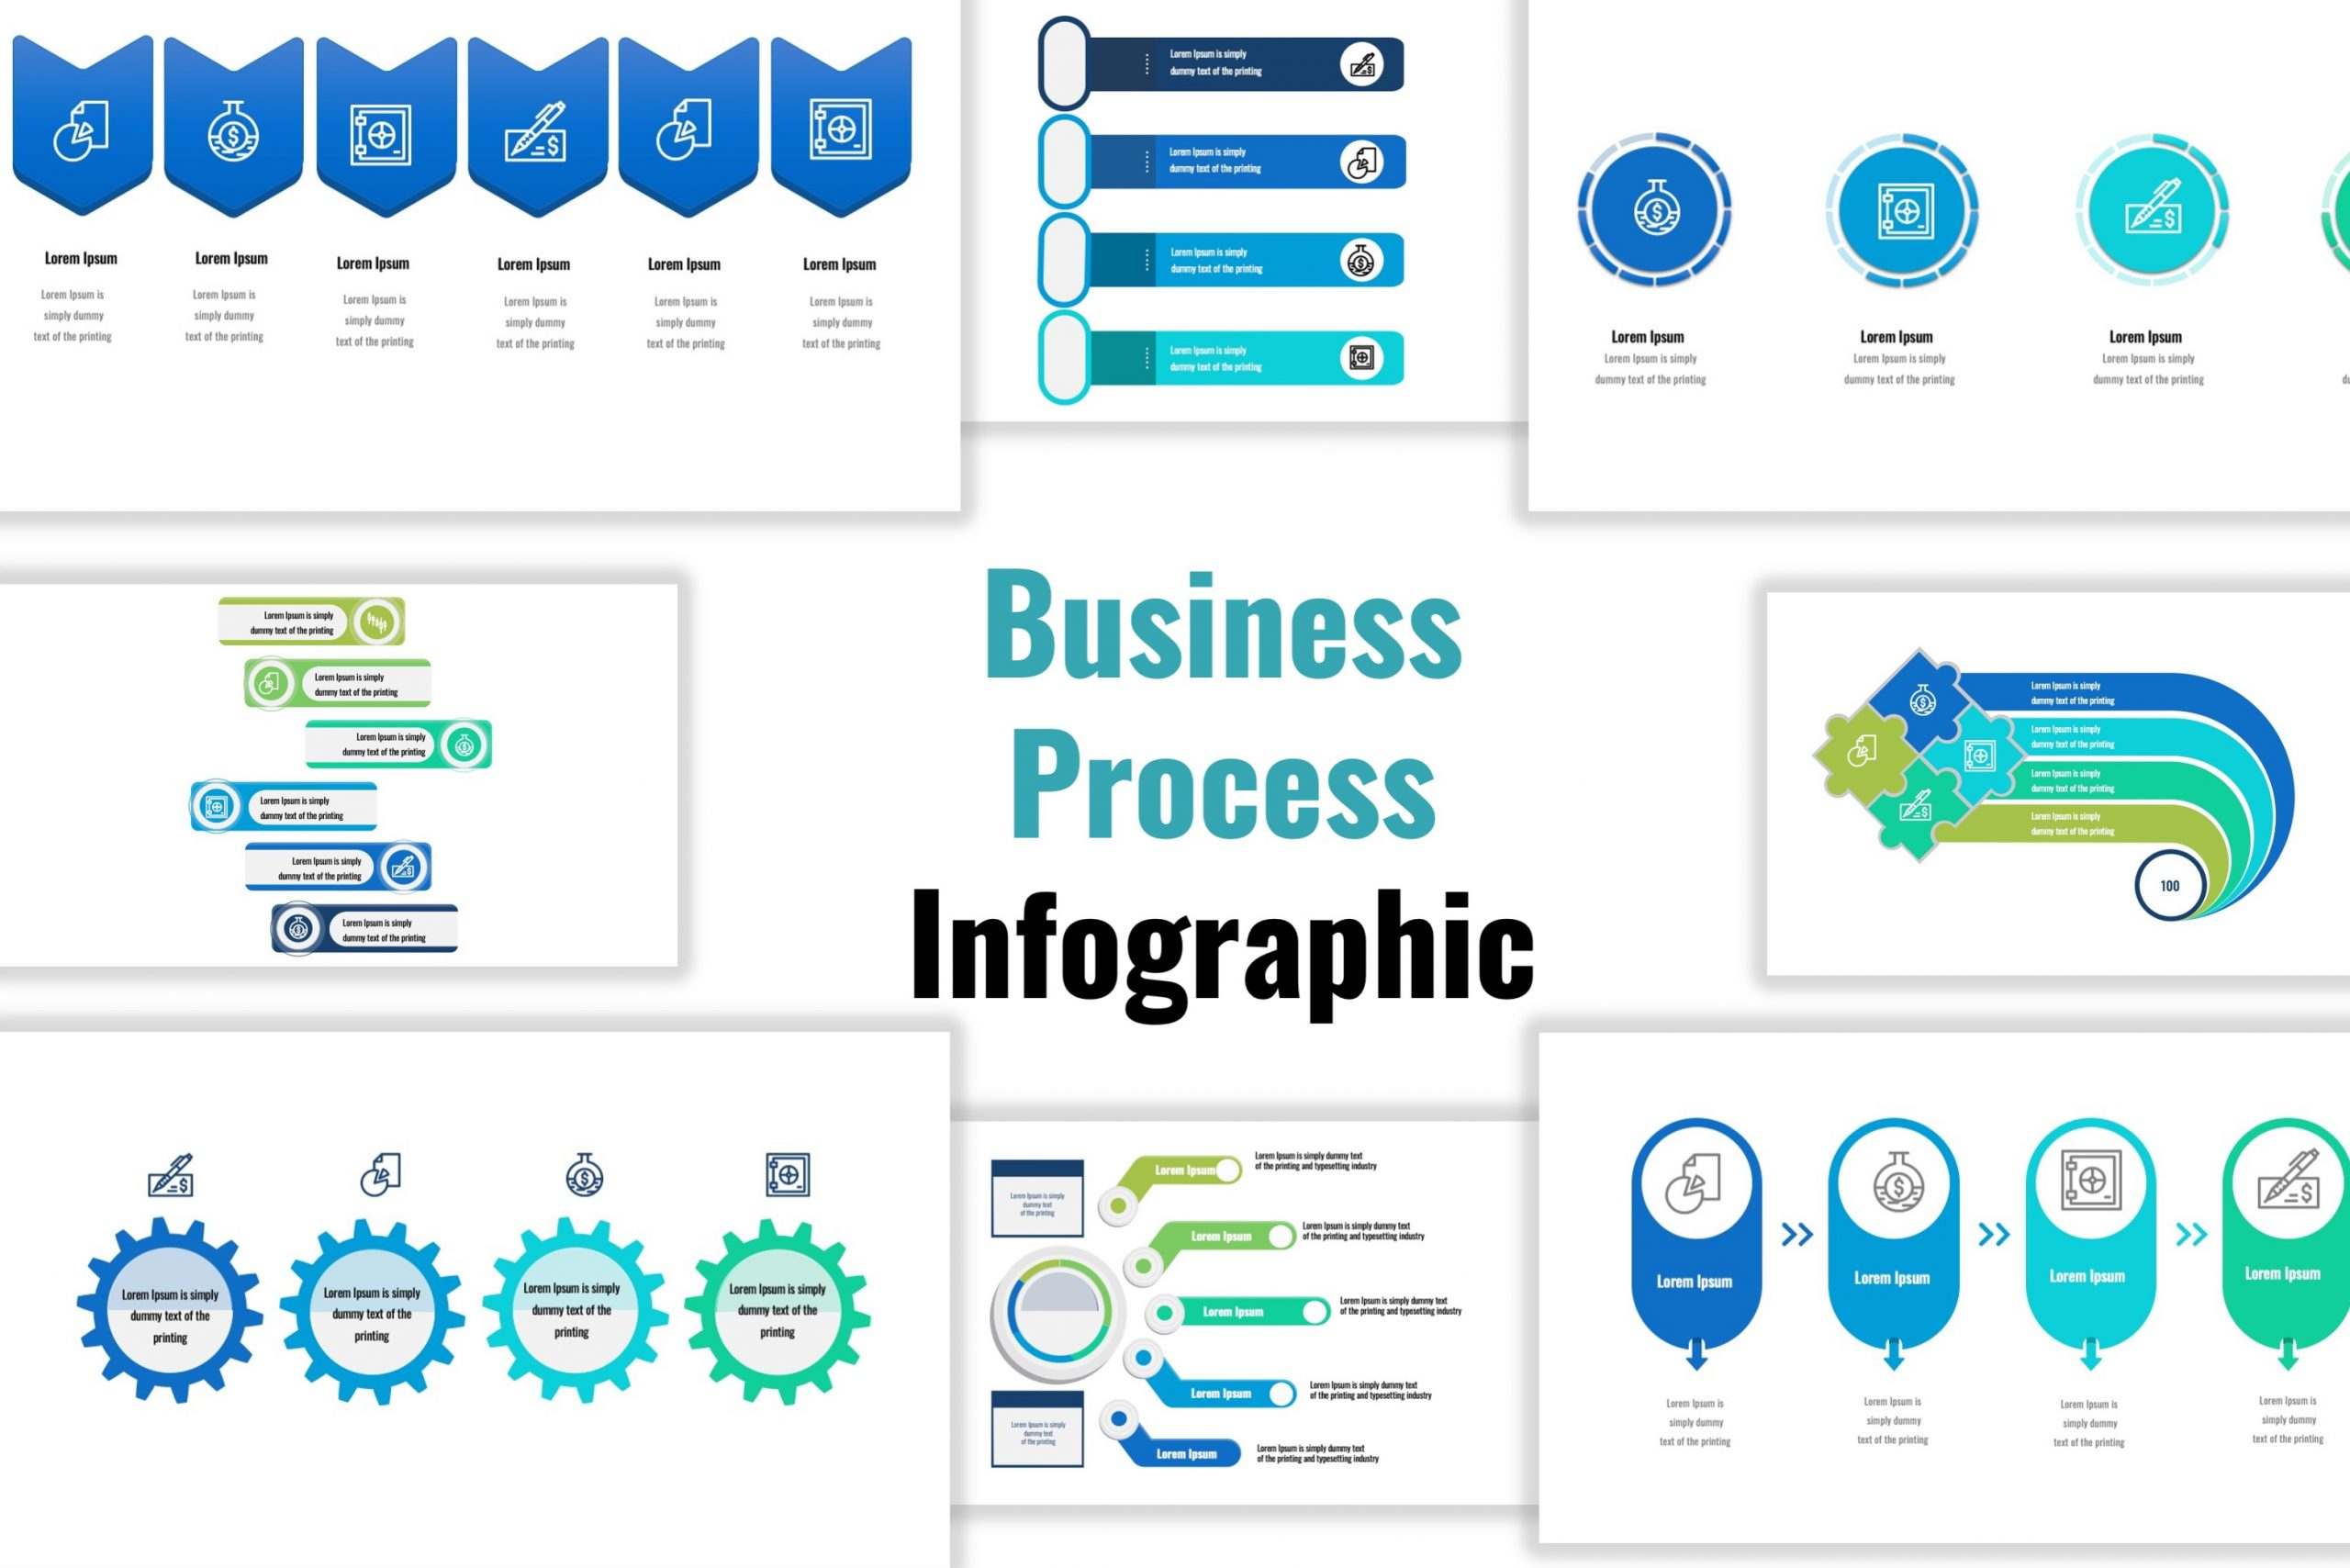 infographic template of Business Process